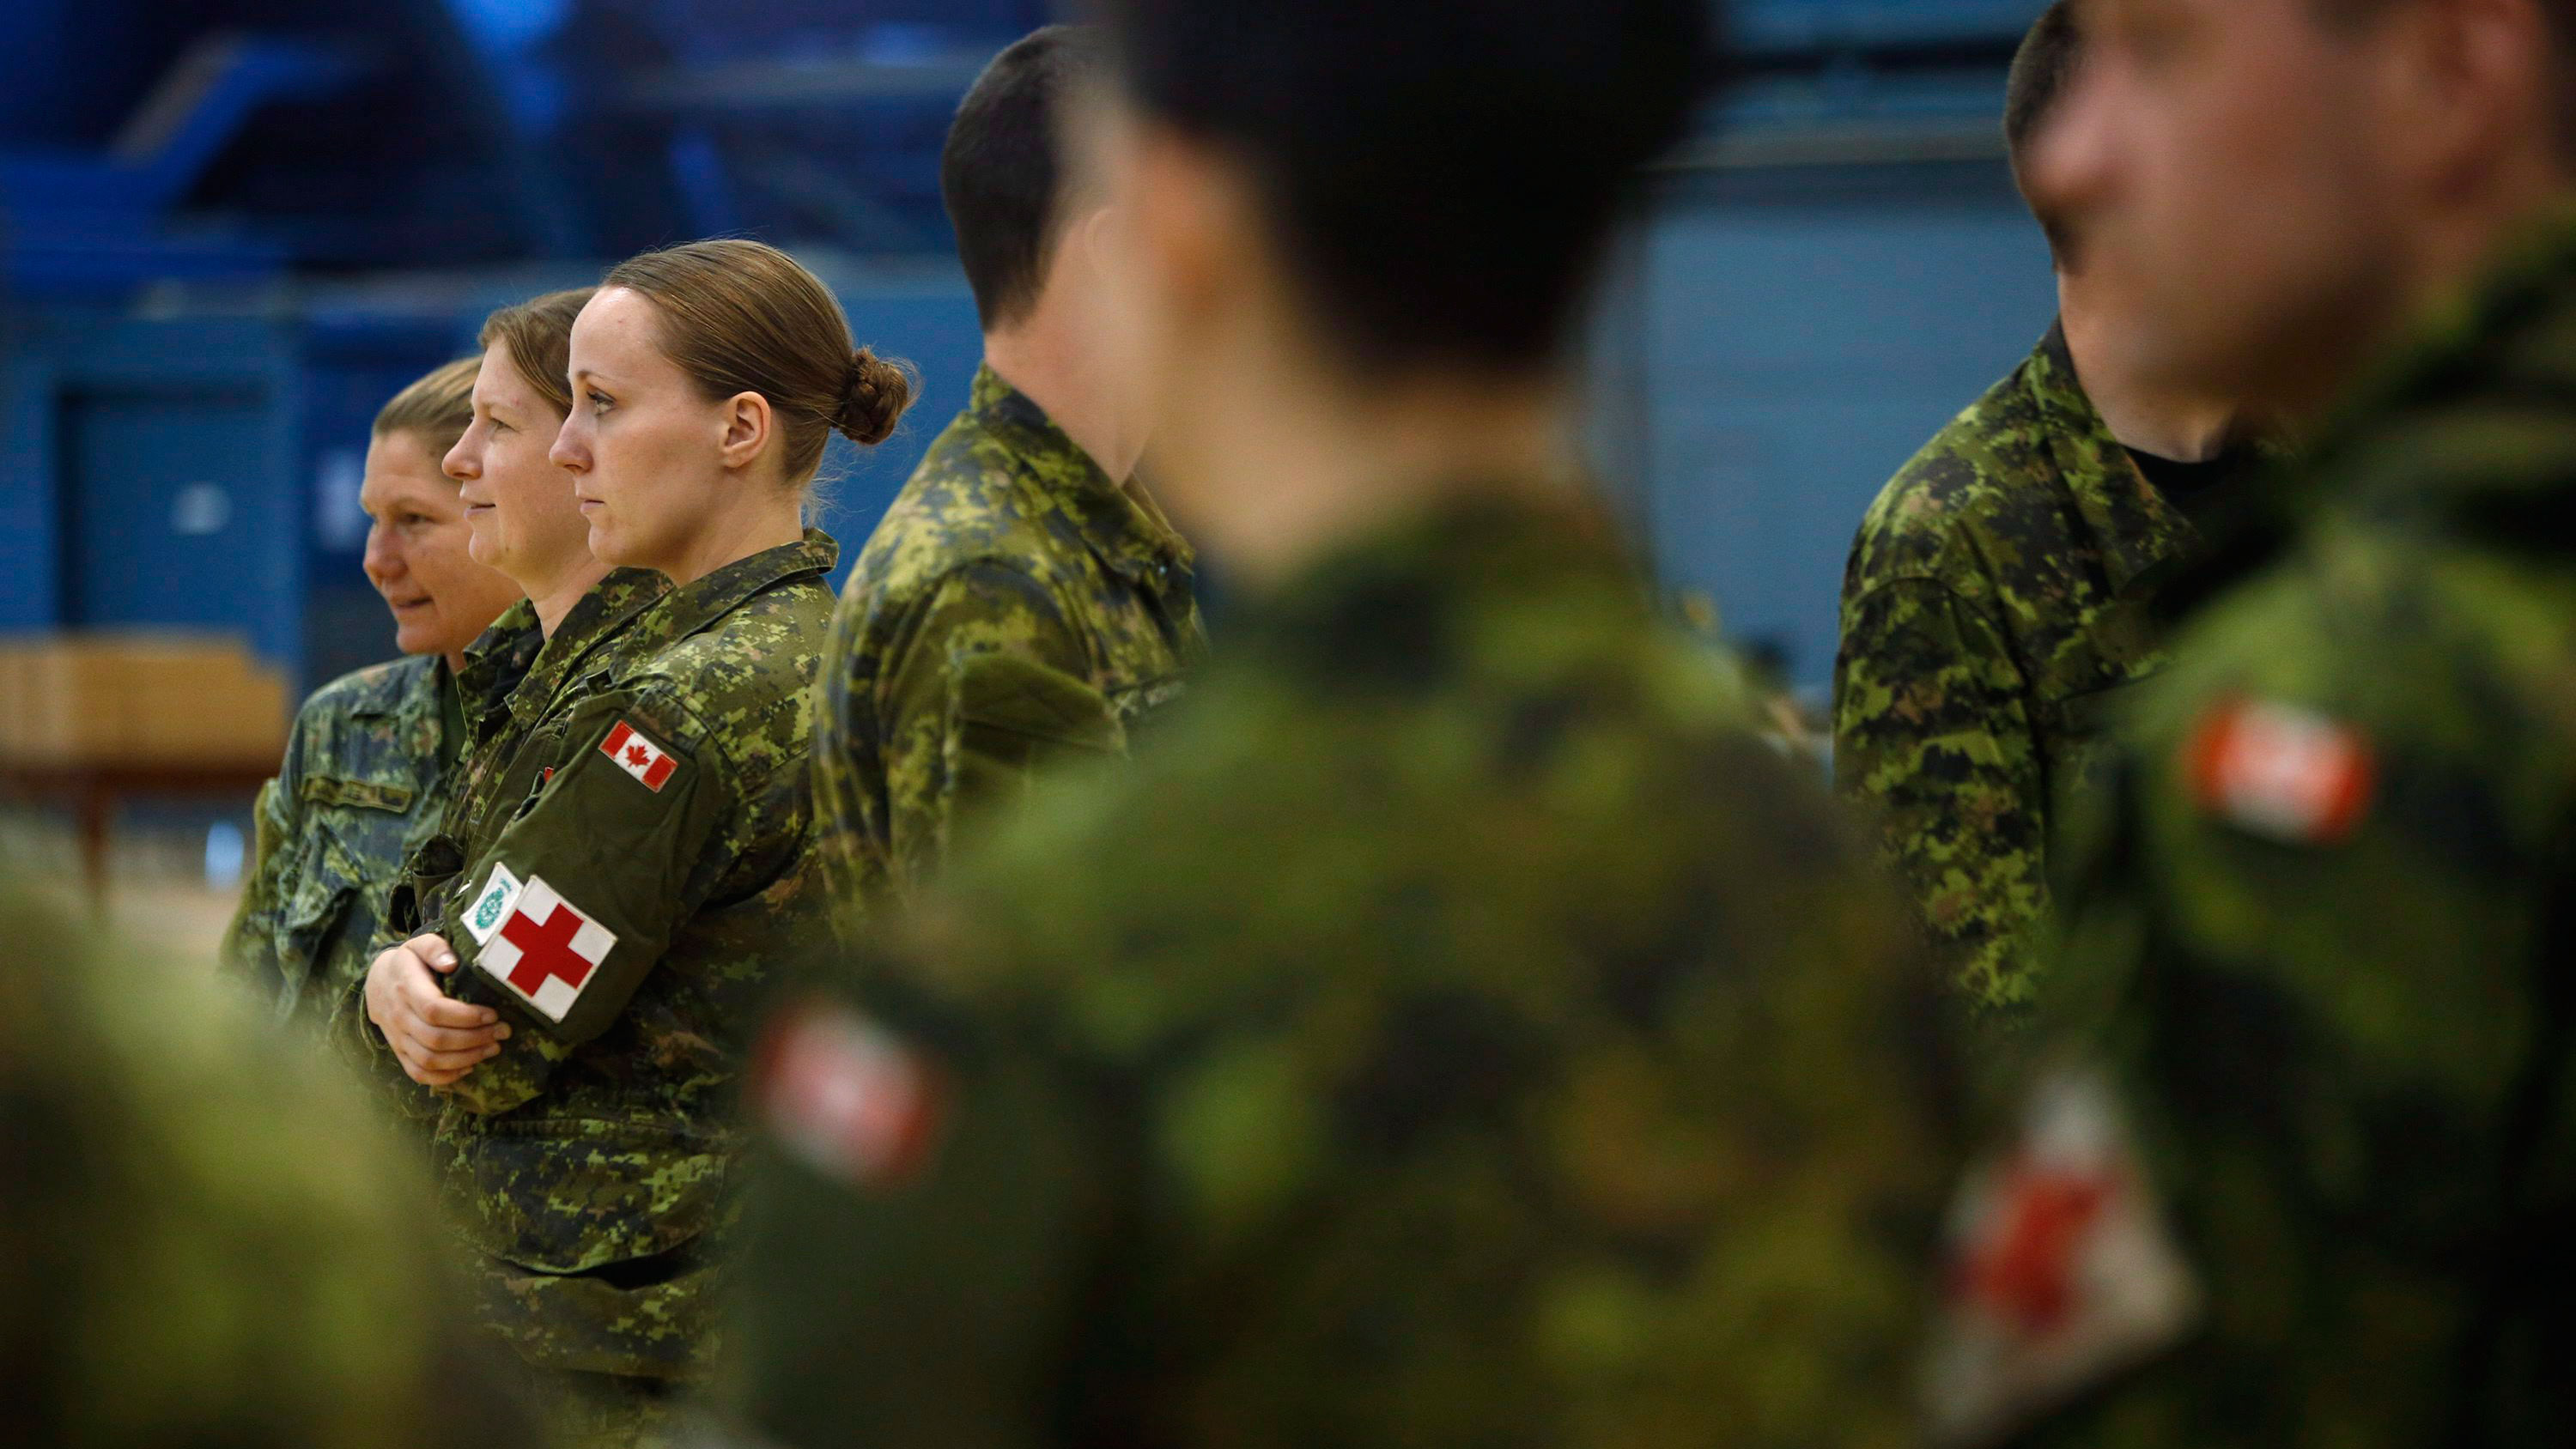 960 soldiers reported being sexually assaulted last year: Statscan